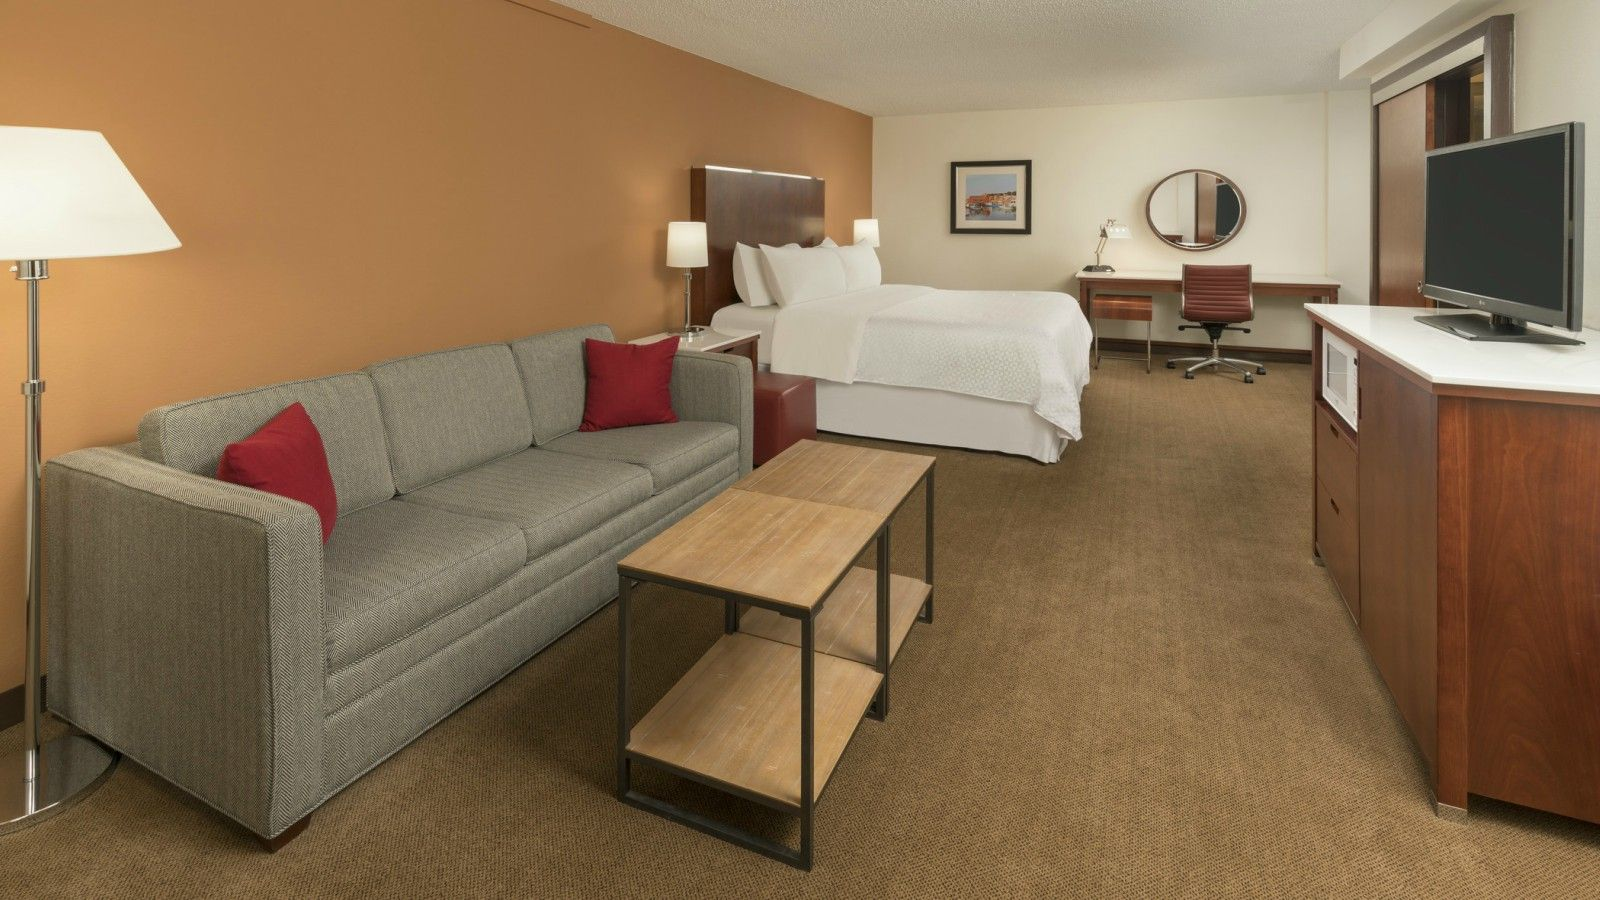 Logan Airport Accommodations - Deluxe Room